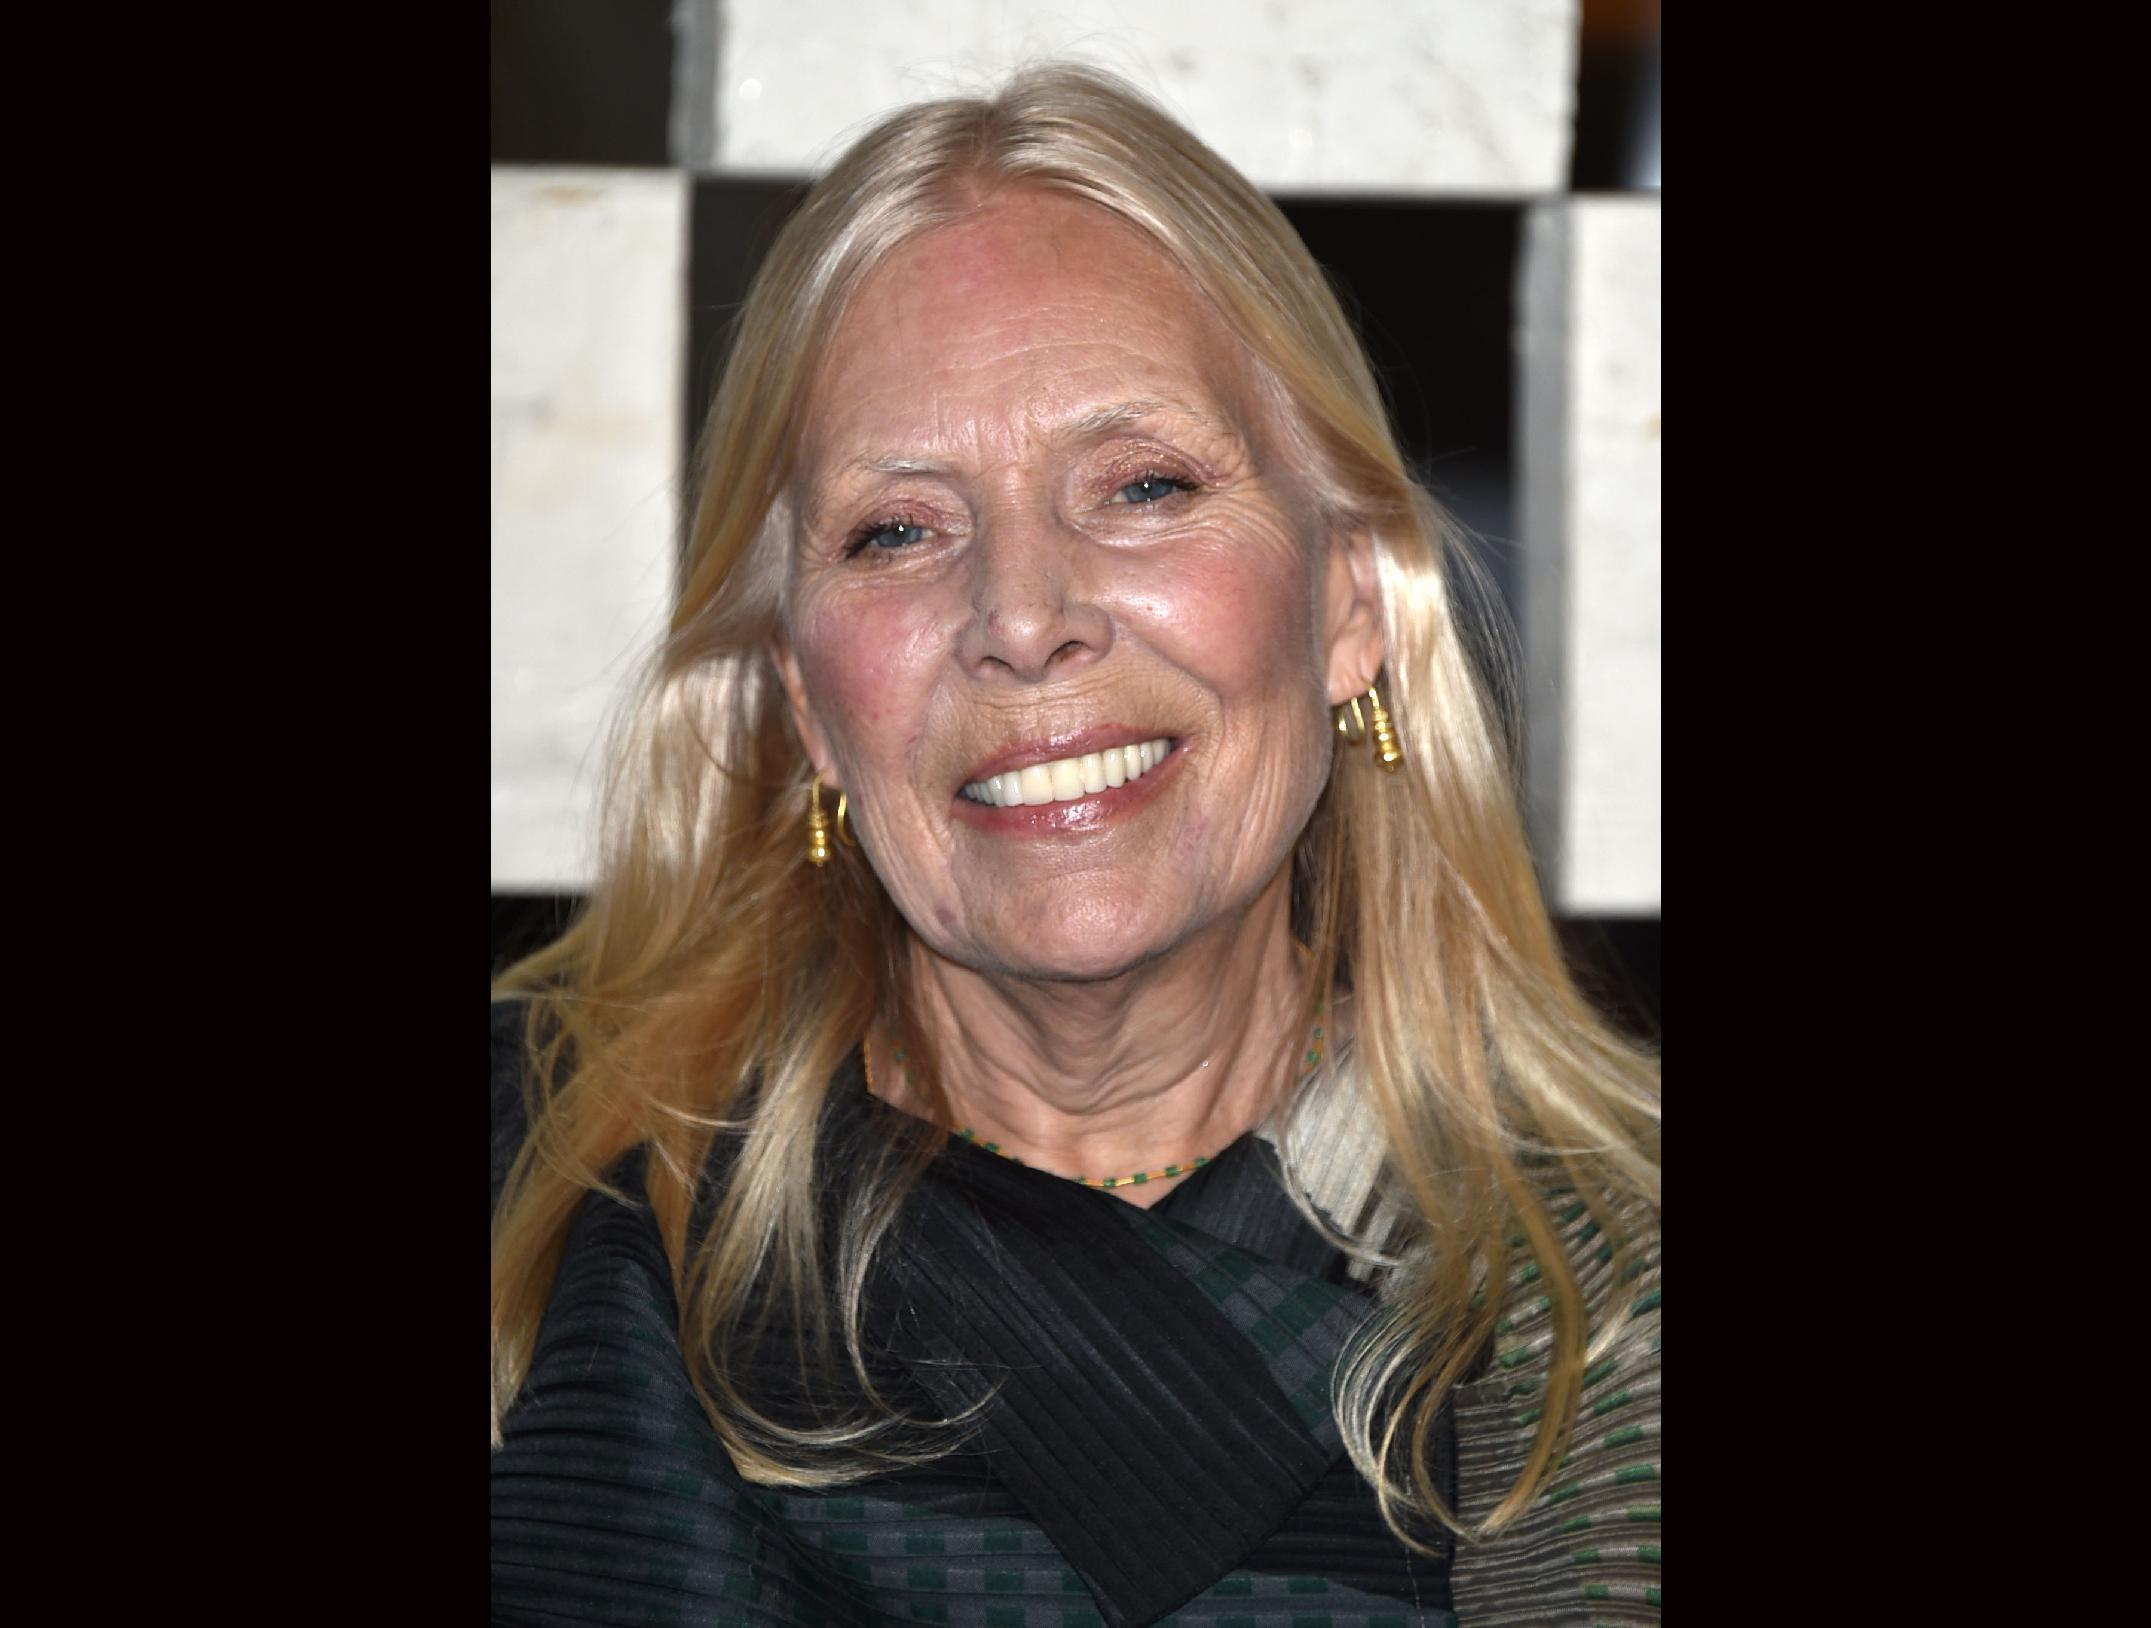 Joni Mitchell fans sending good vibes to hospitalized singer